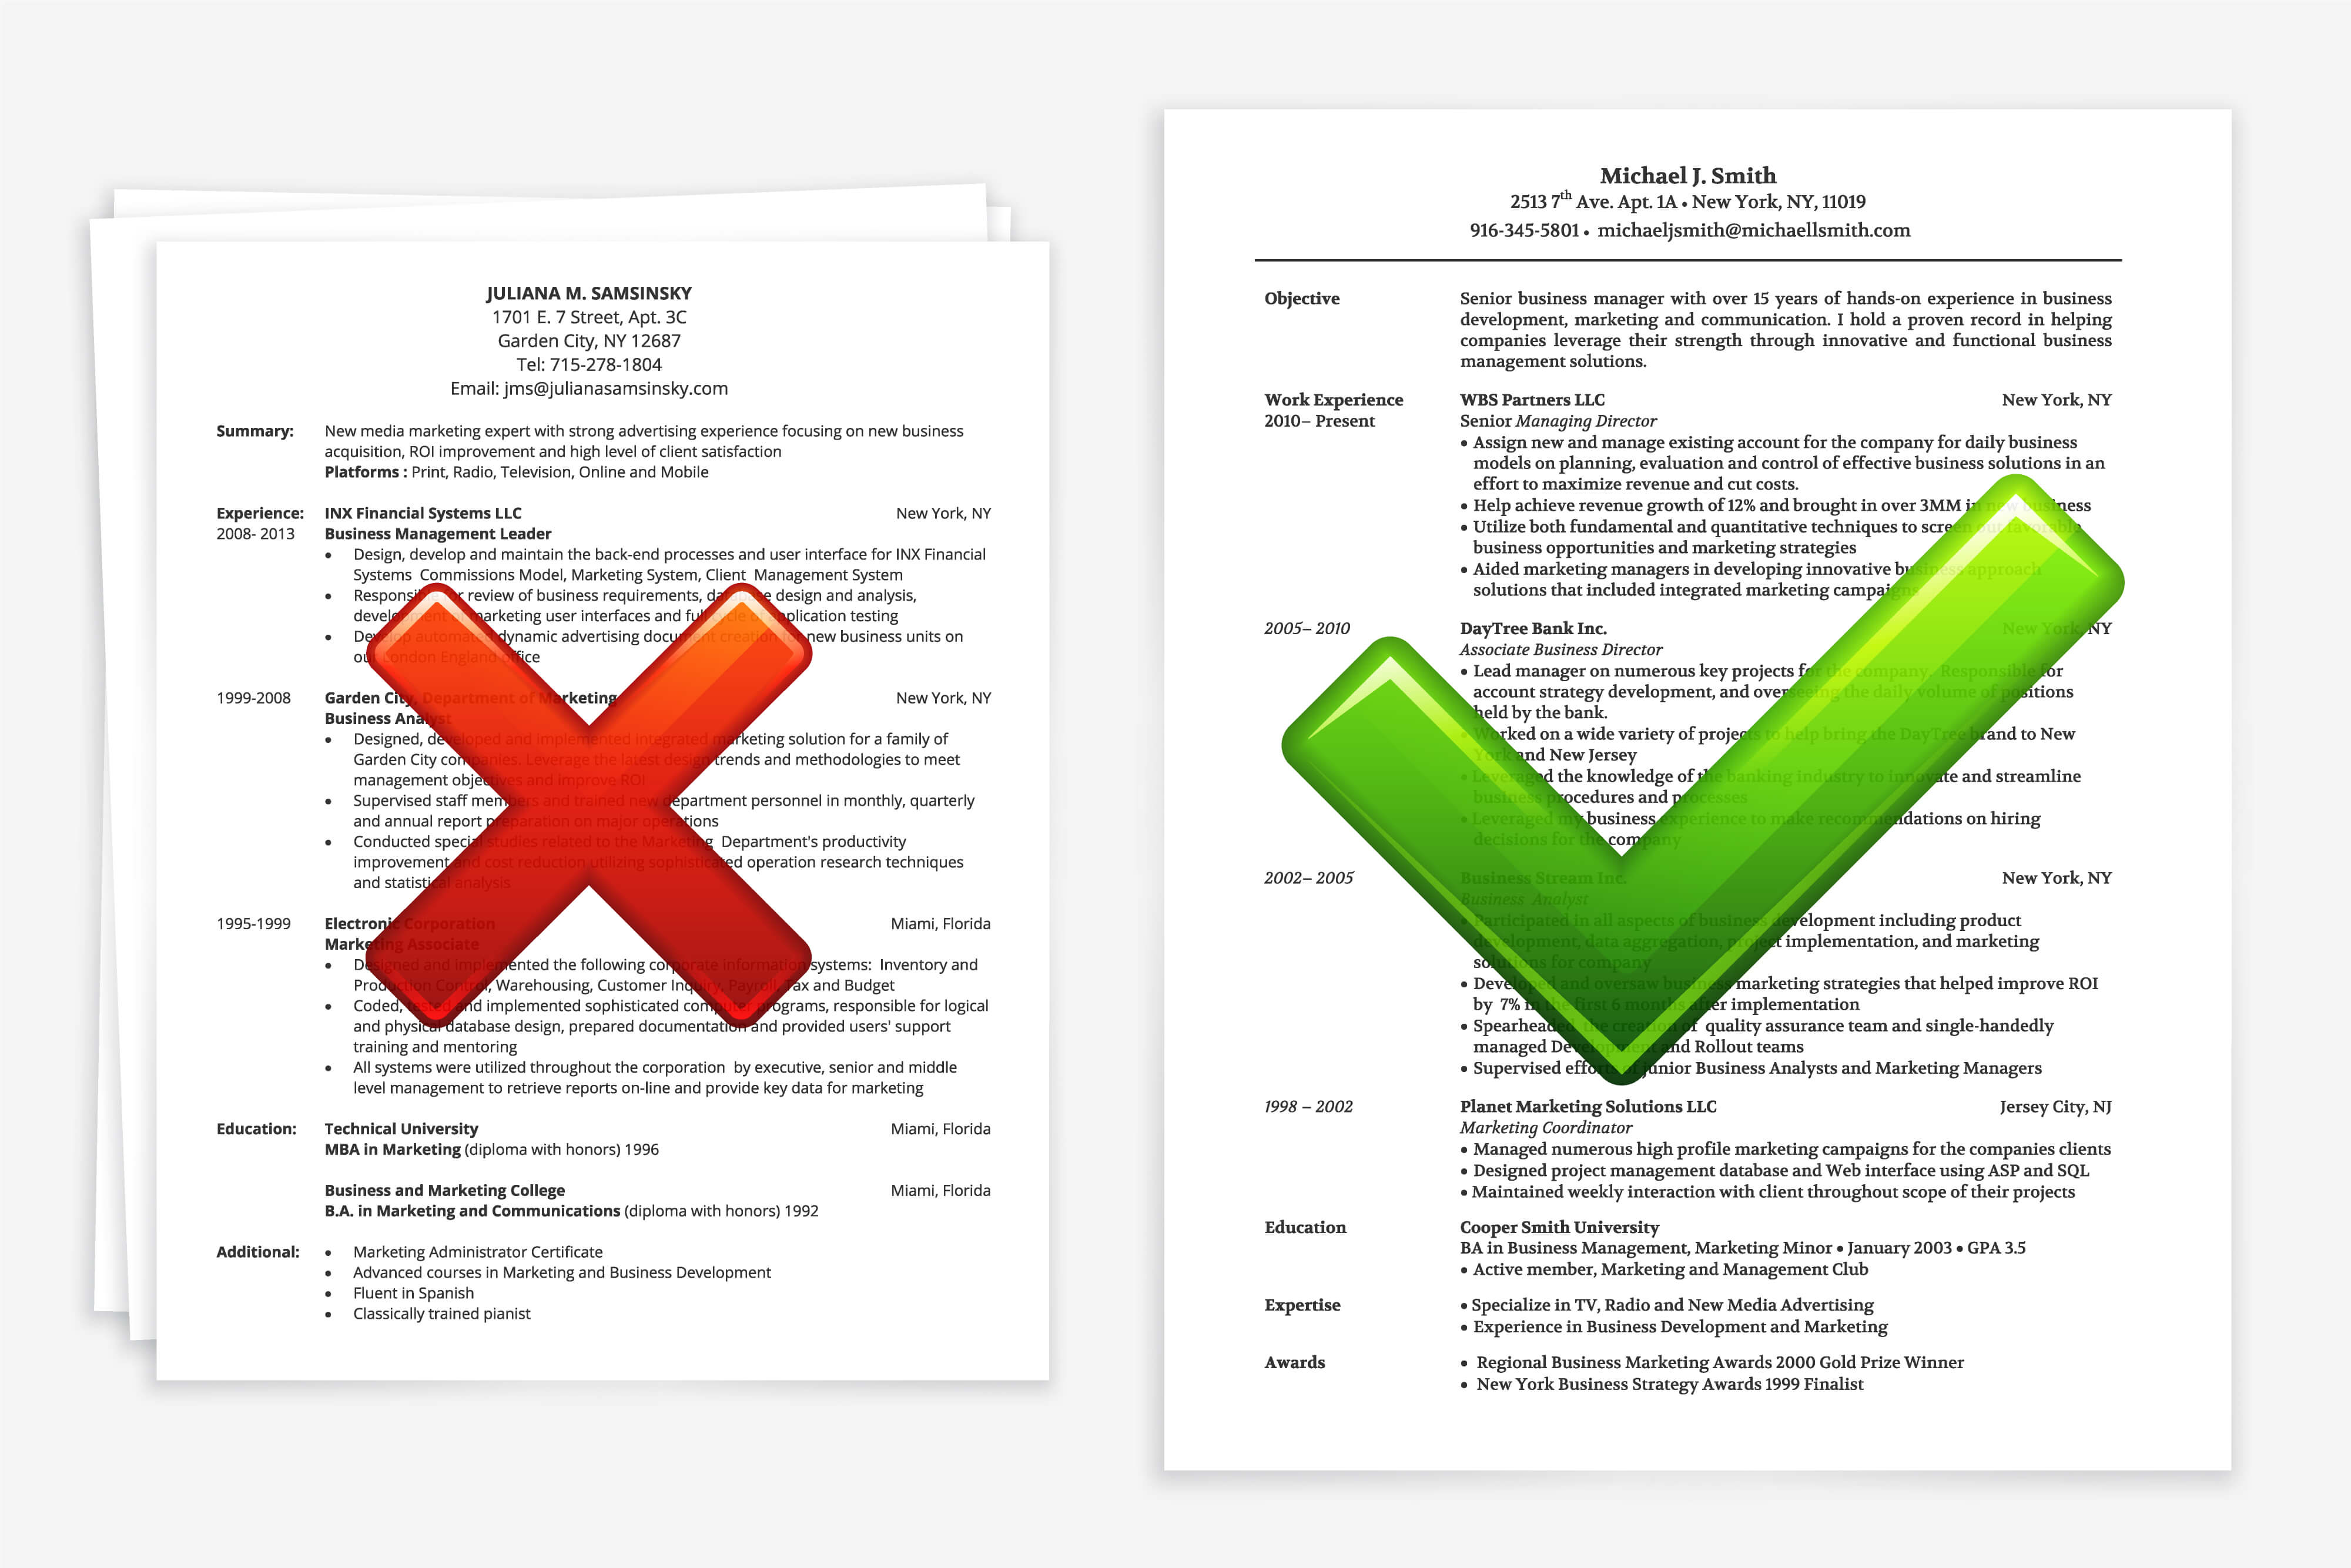 cv layout order resume writing resume examples cover letters cv layout order examples of how not to write a cv cv masterclass resume creating a